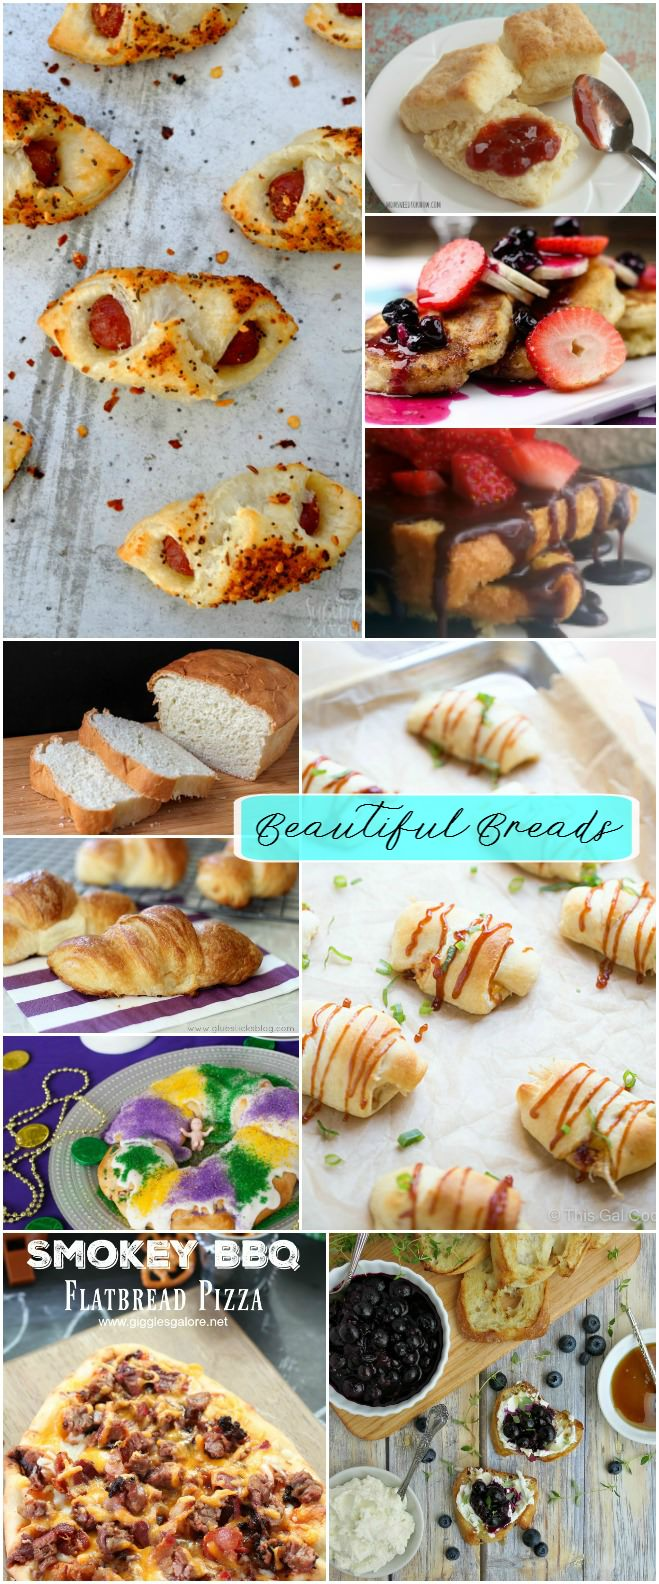 You'll fall in love with carbs again with this Beautiful Bread Recipe Collection! Featuring homemade bread, homemade biscuits, and Pigs in a Blanket! YUM! It's a Carb feast!